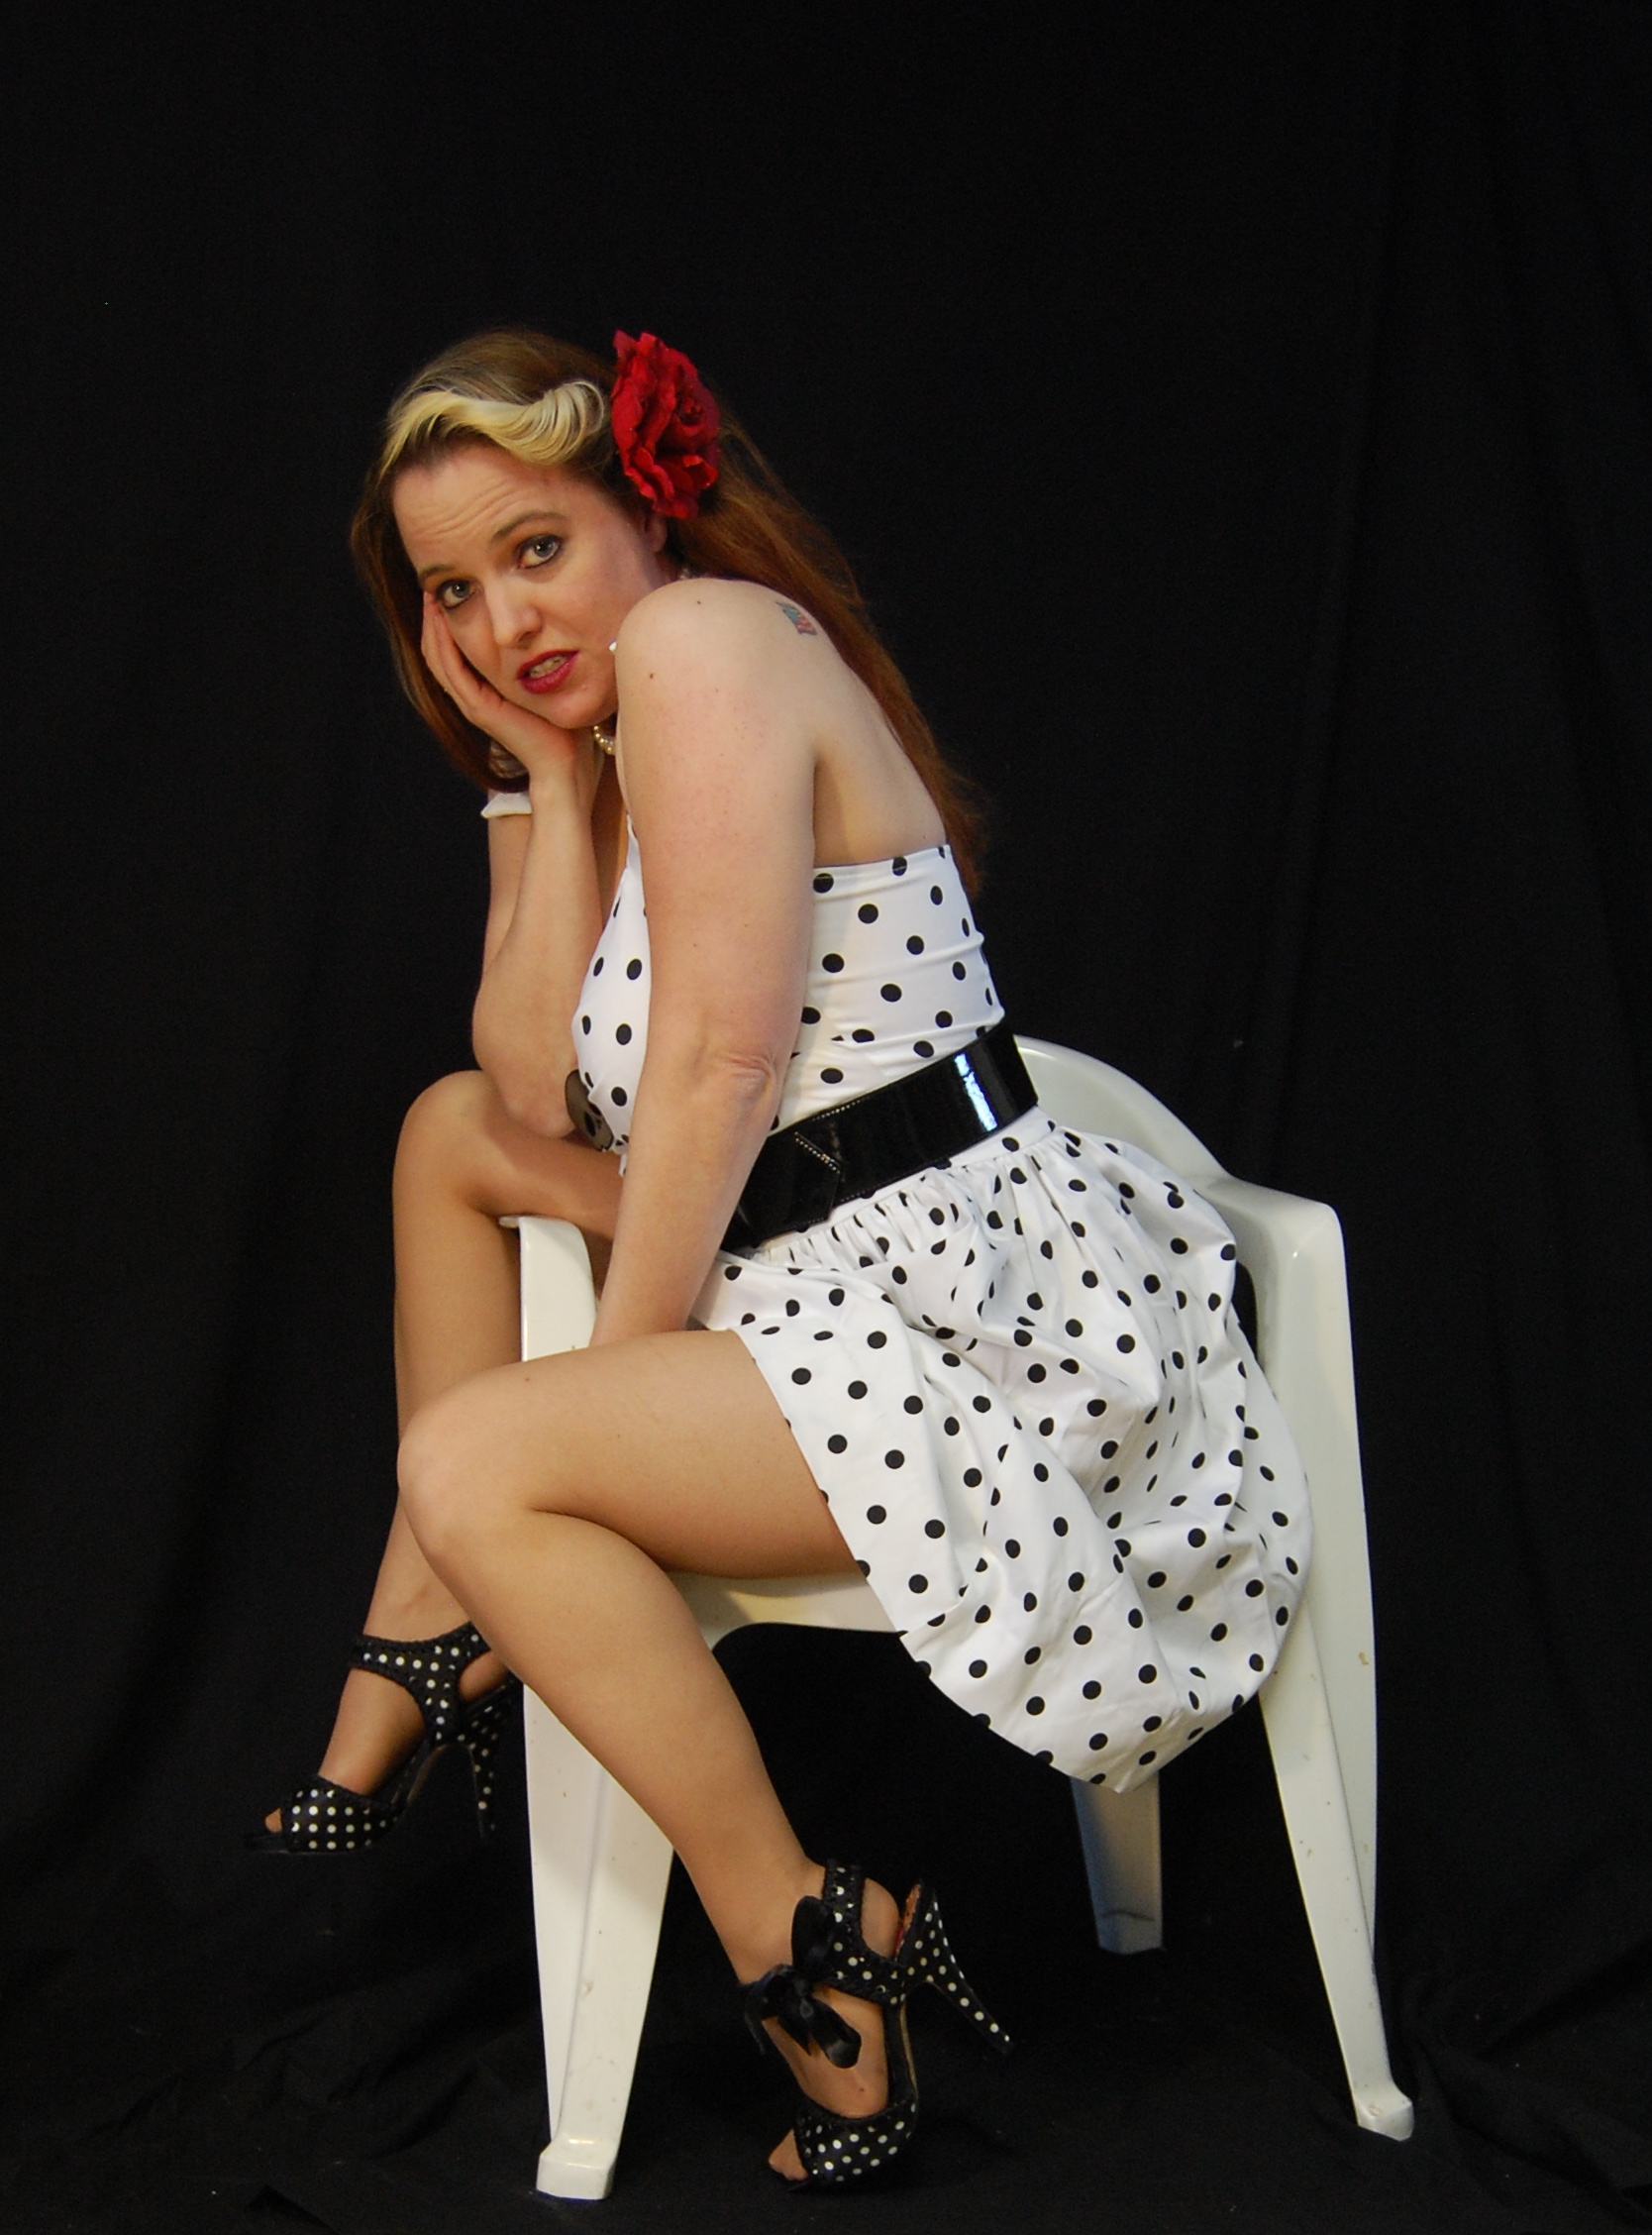 2010 Fife pinup white dress 0544